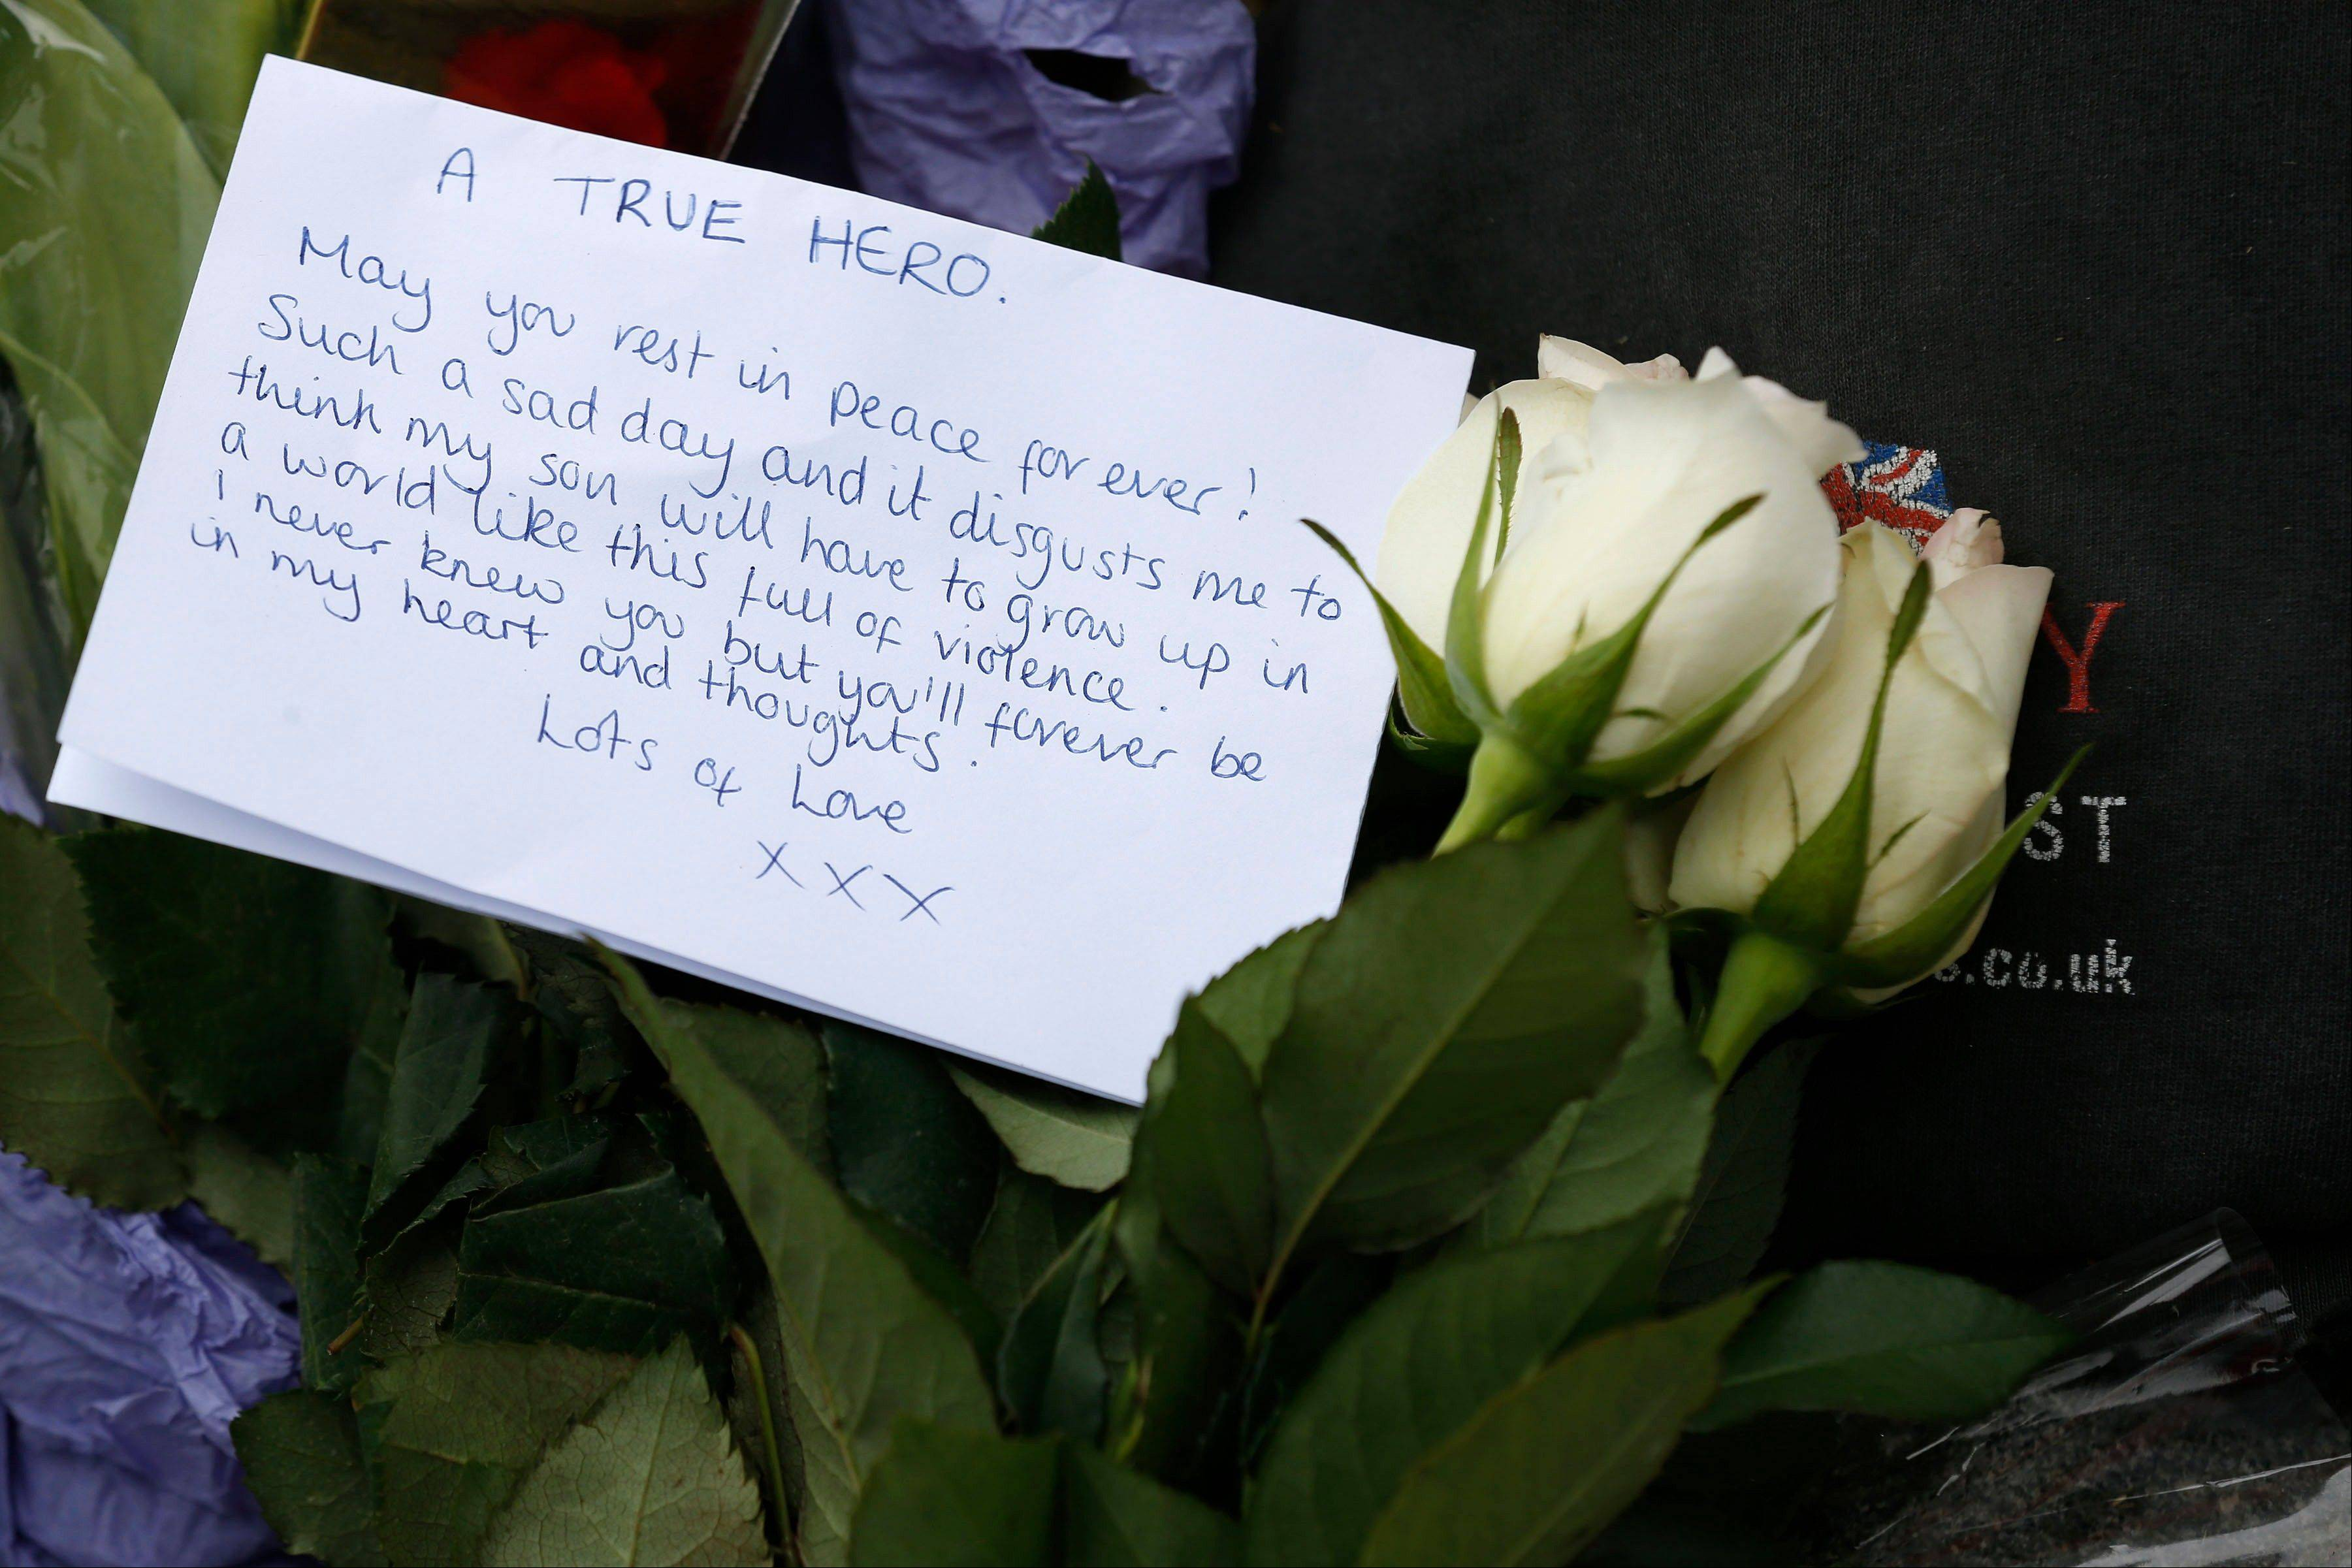 A floral tribute in memory of the victim is seen outside the Royal Artillery Barracks near the scene of a terror attack in Woolwich, southeast London, Thursday, May 23, 2013. The British government�s emergency committee met Thursday after two attackers killed a man in a daylight attack in London that raised fears terrorism had returned to the capital.